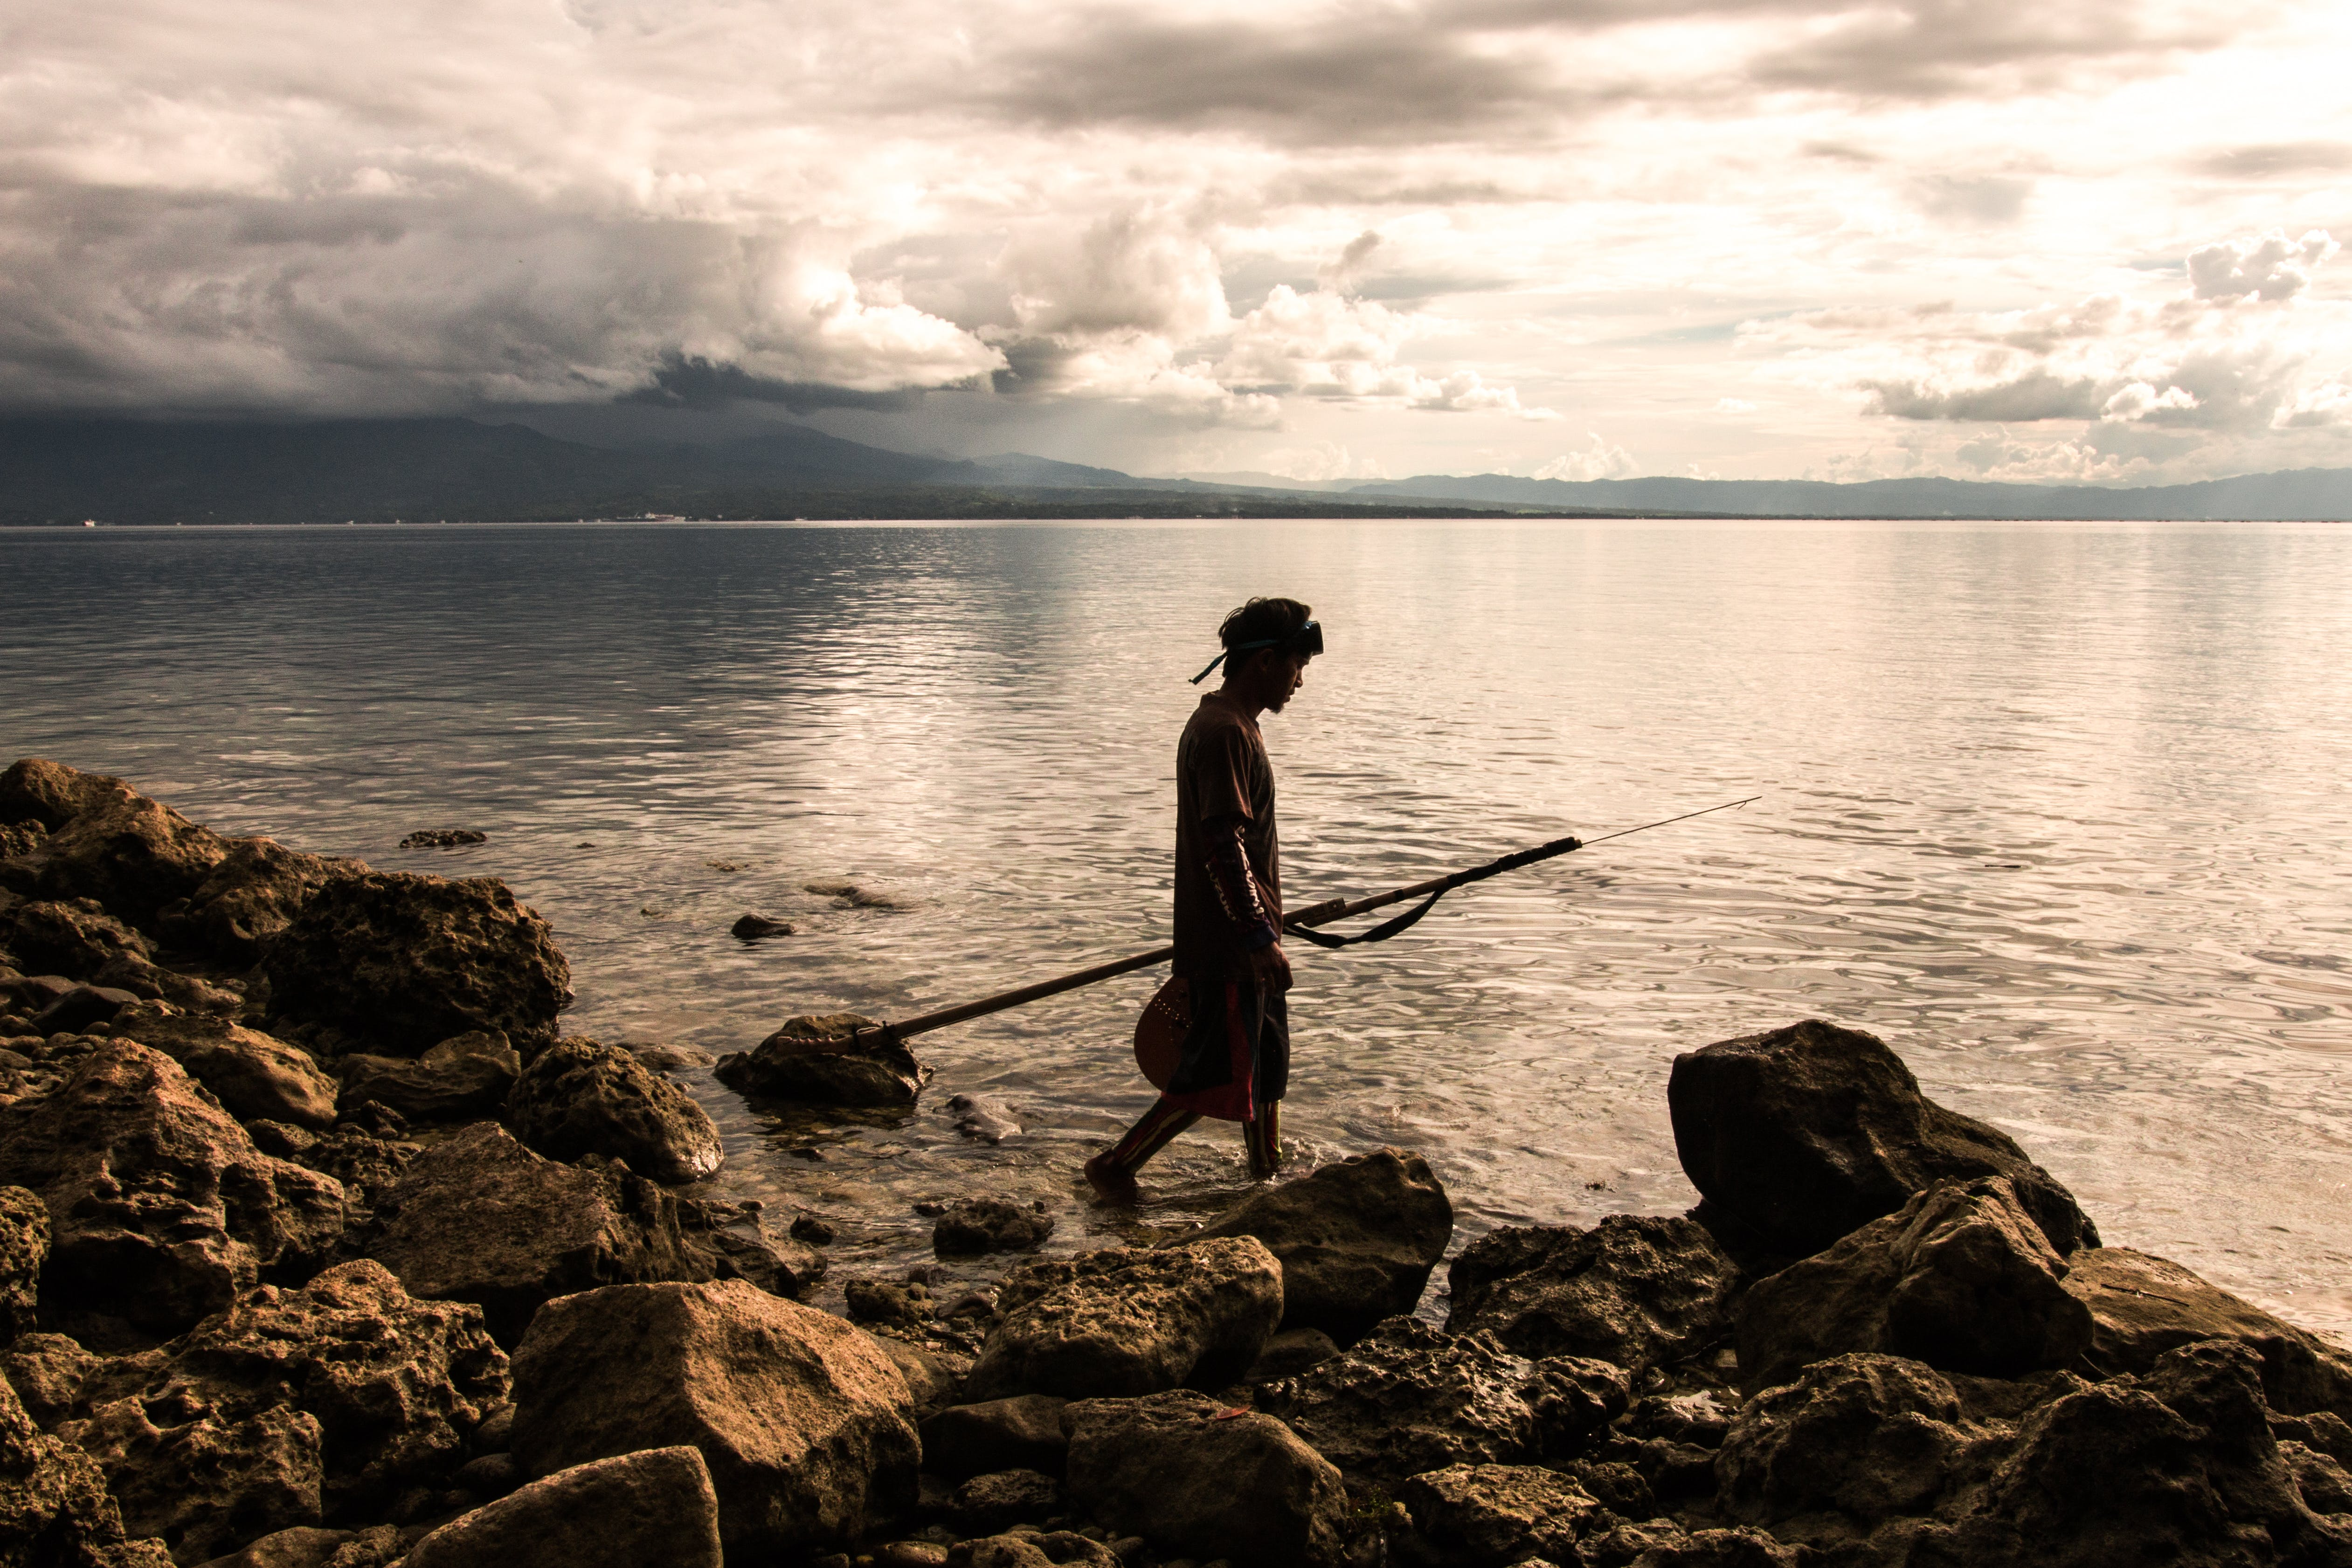 Person Holding Spear Beside Body of Water